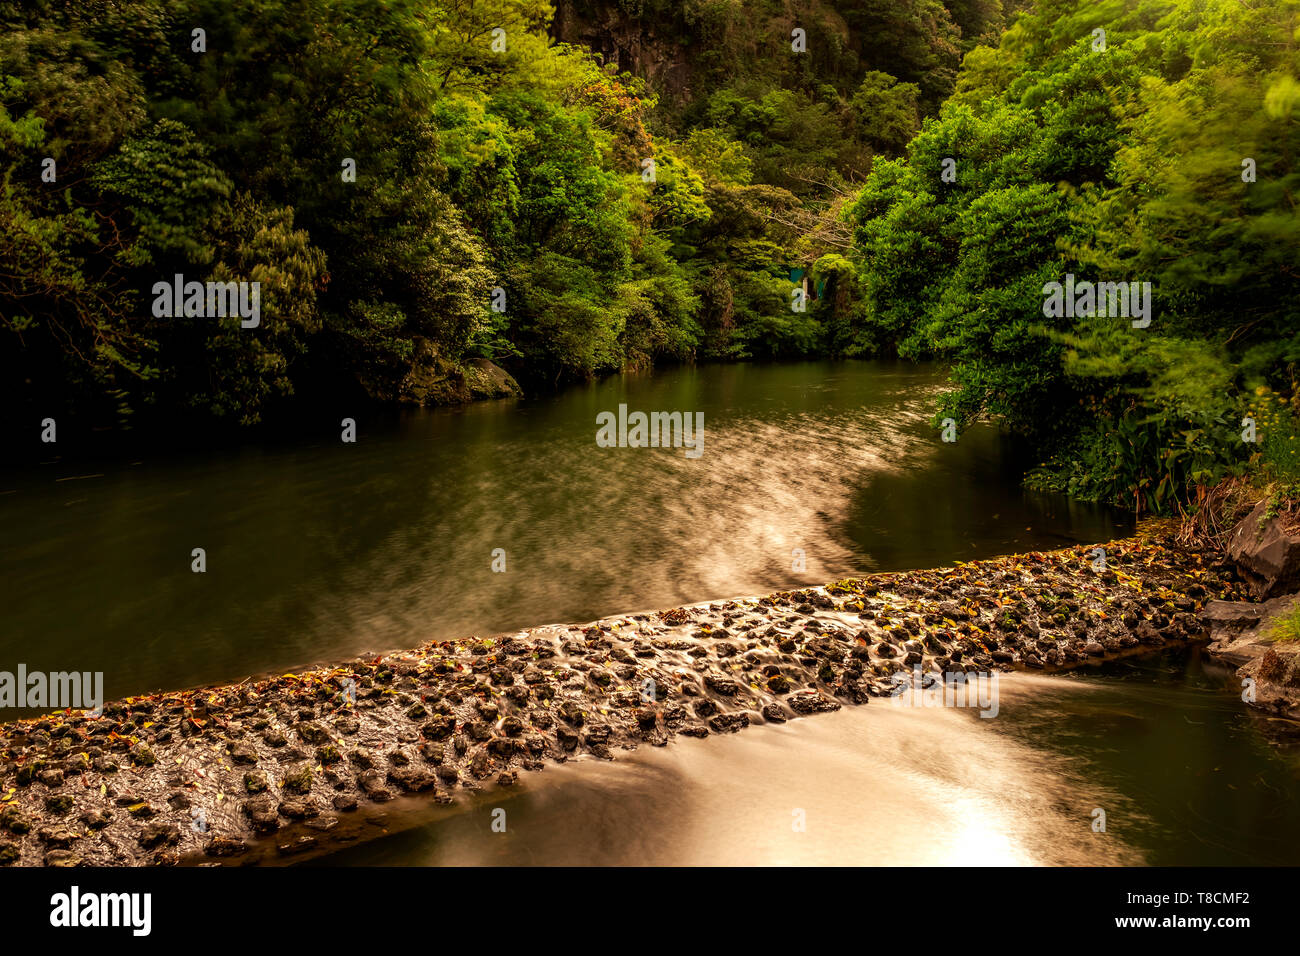 artificial dam in the river, Jeju, South Korea - Stock Image